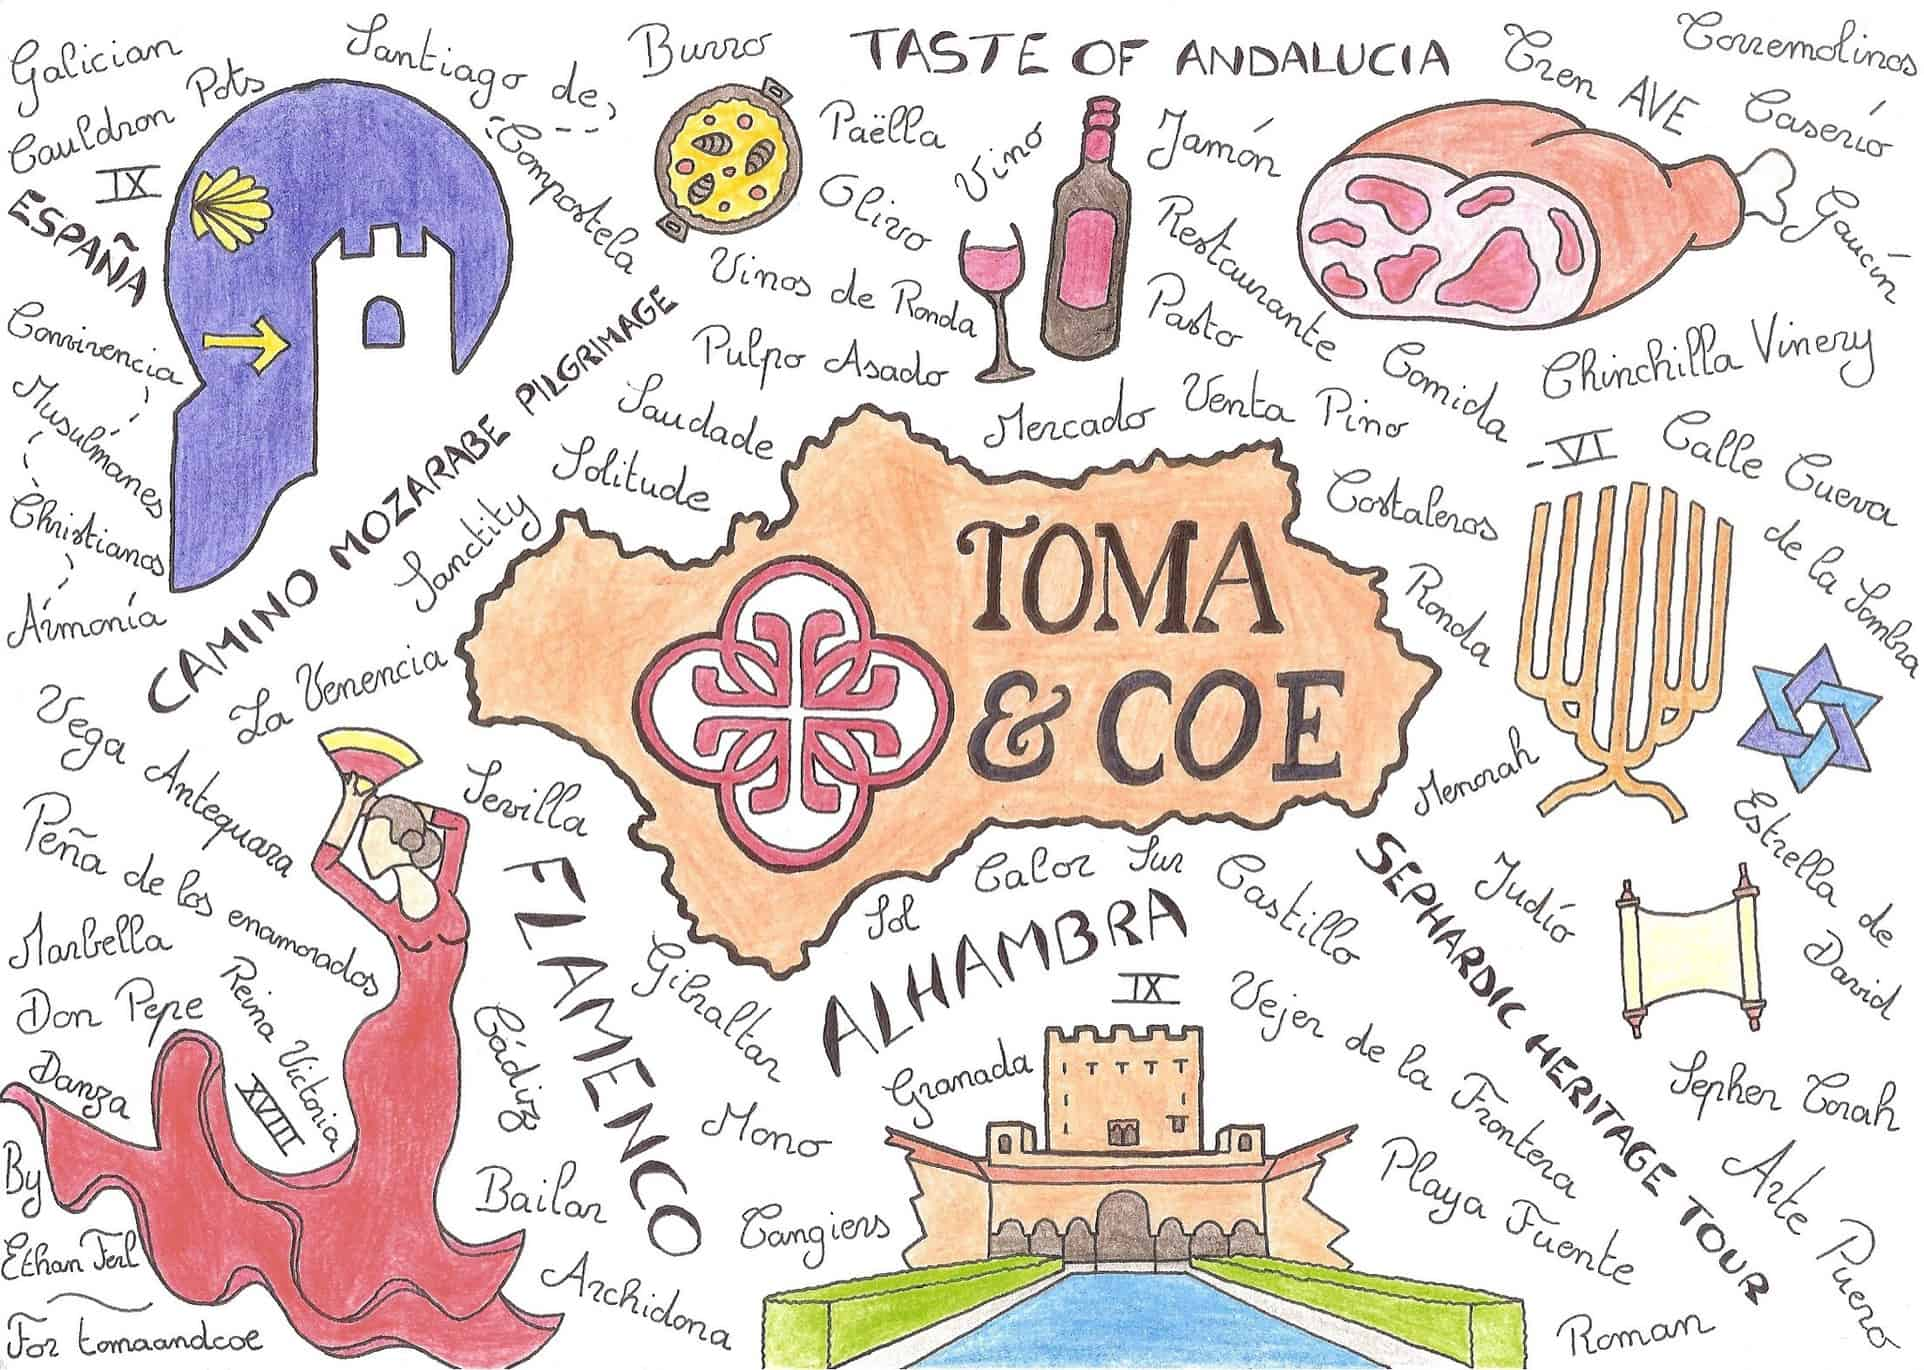 Bespoke tours of Andalucia